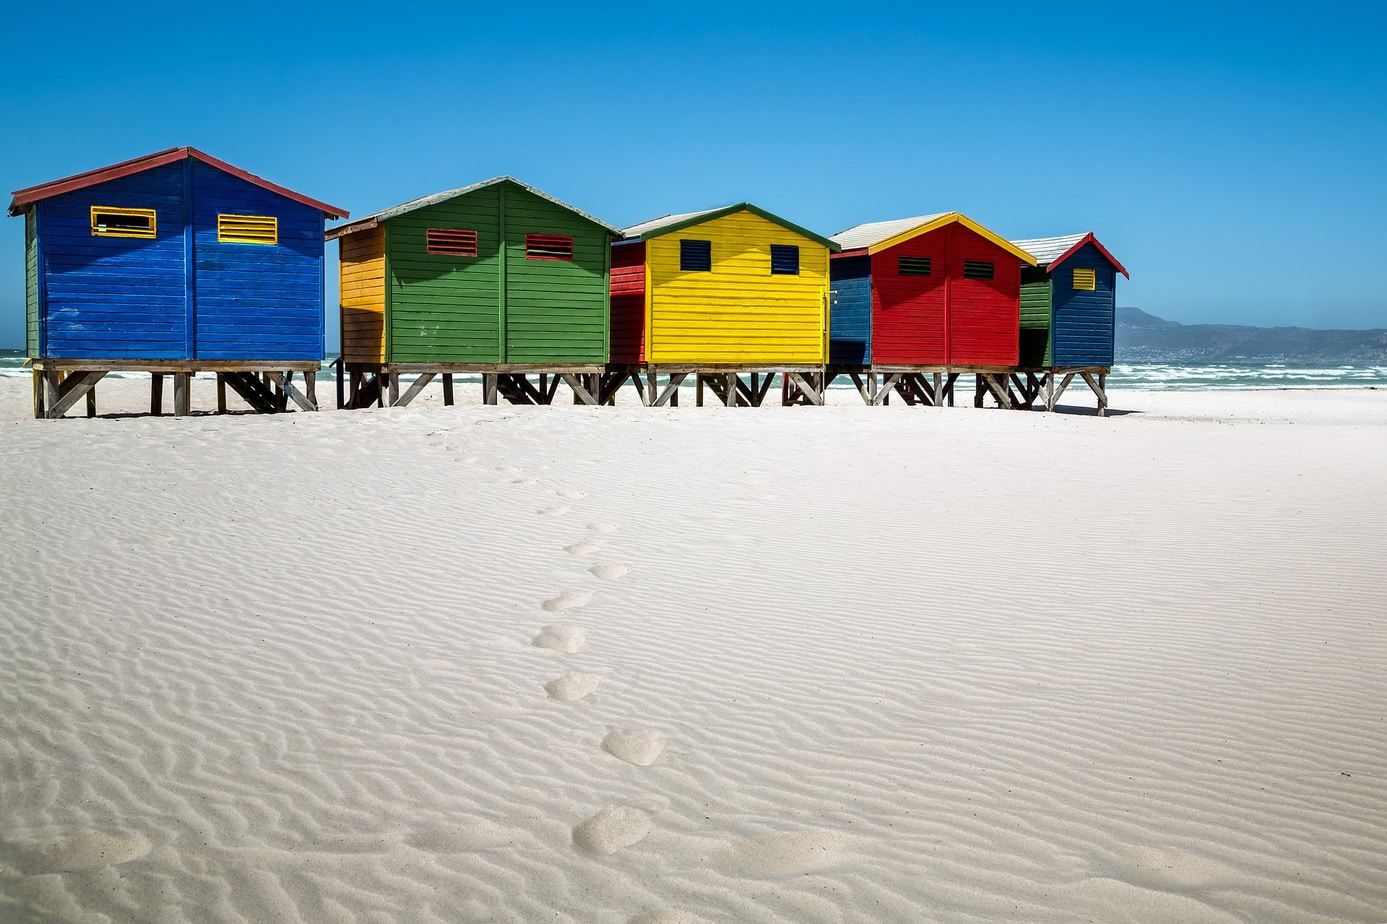 South Africa is a big country. Trying to see all of it is an impossible task and choosing these spots for the